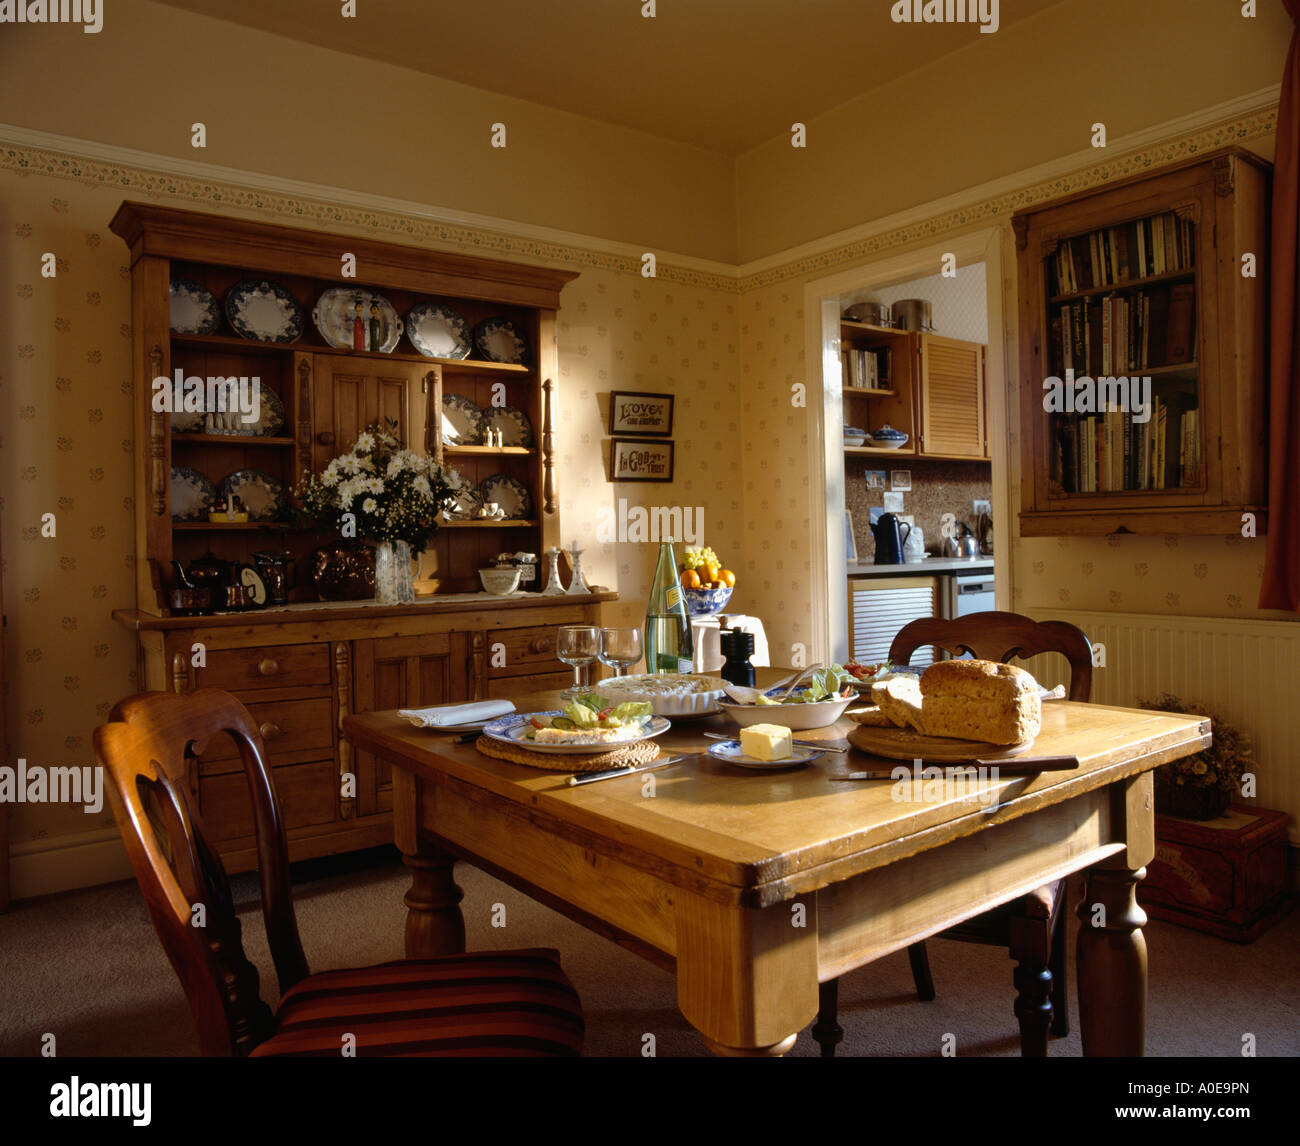 Settings On Pine Table With Dresser In Dining Room Stock Photo Alamy